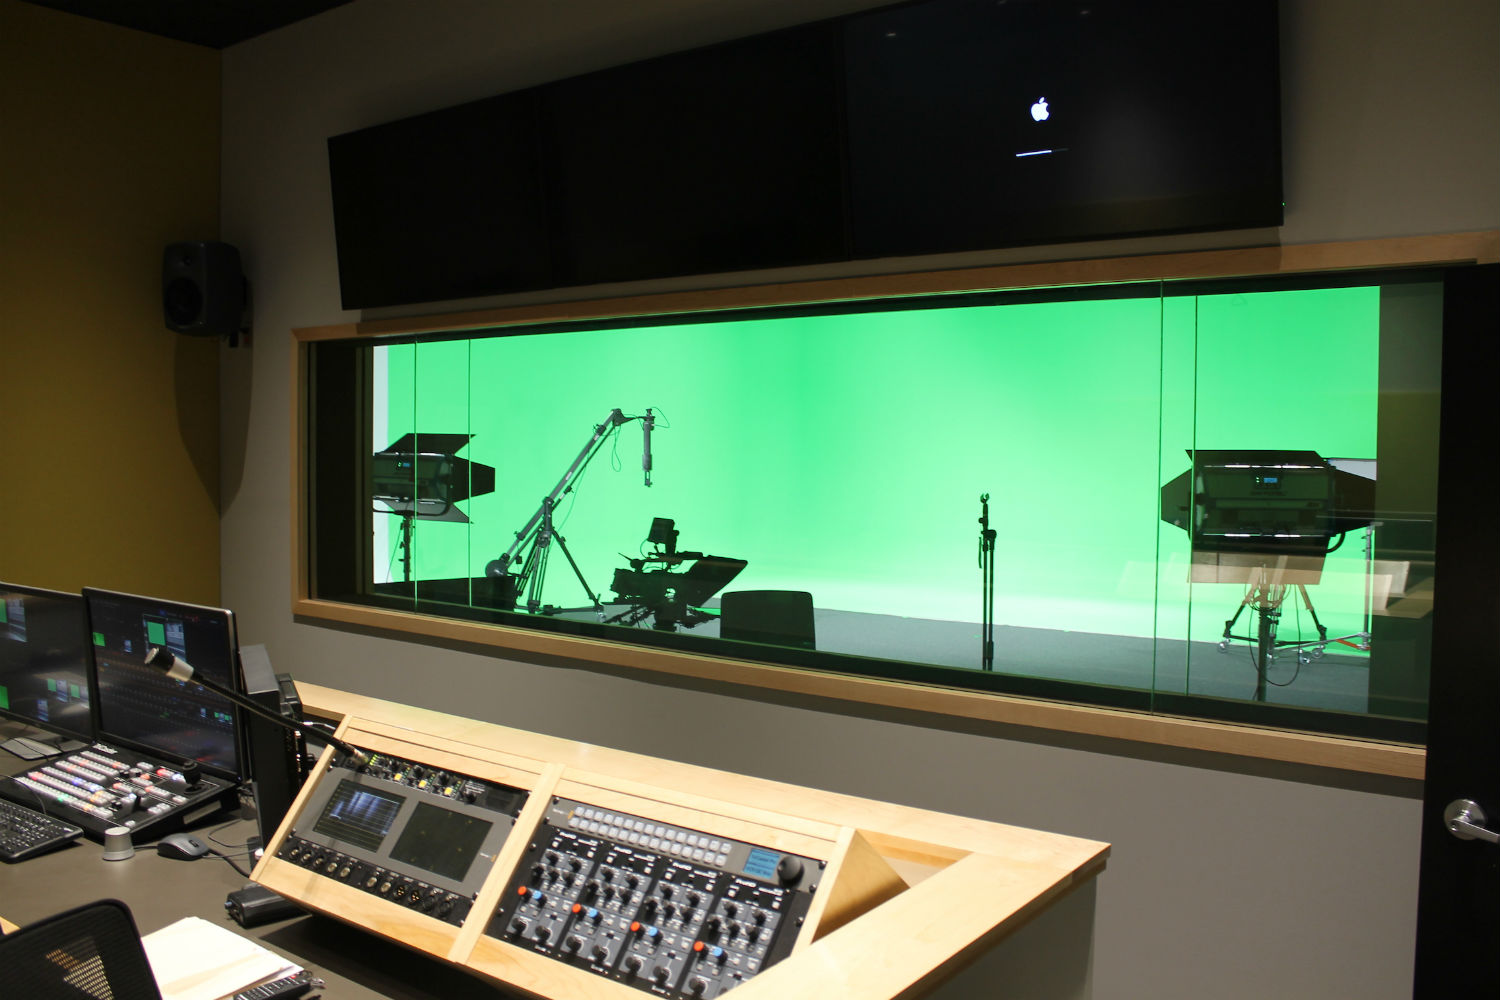 MJH Studios in NJ, designed by WSDG, is a world-class recording and production facility for the main use of creating audio and video healthcare-related content by MJH for their clients. Control Room and Sound Stage with green walls